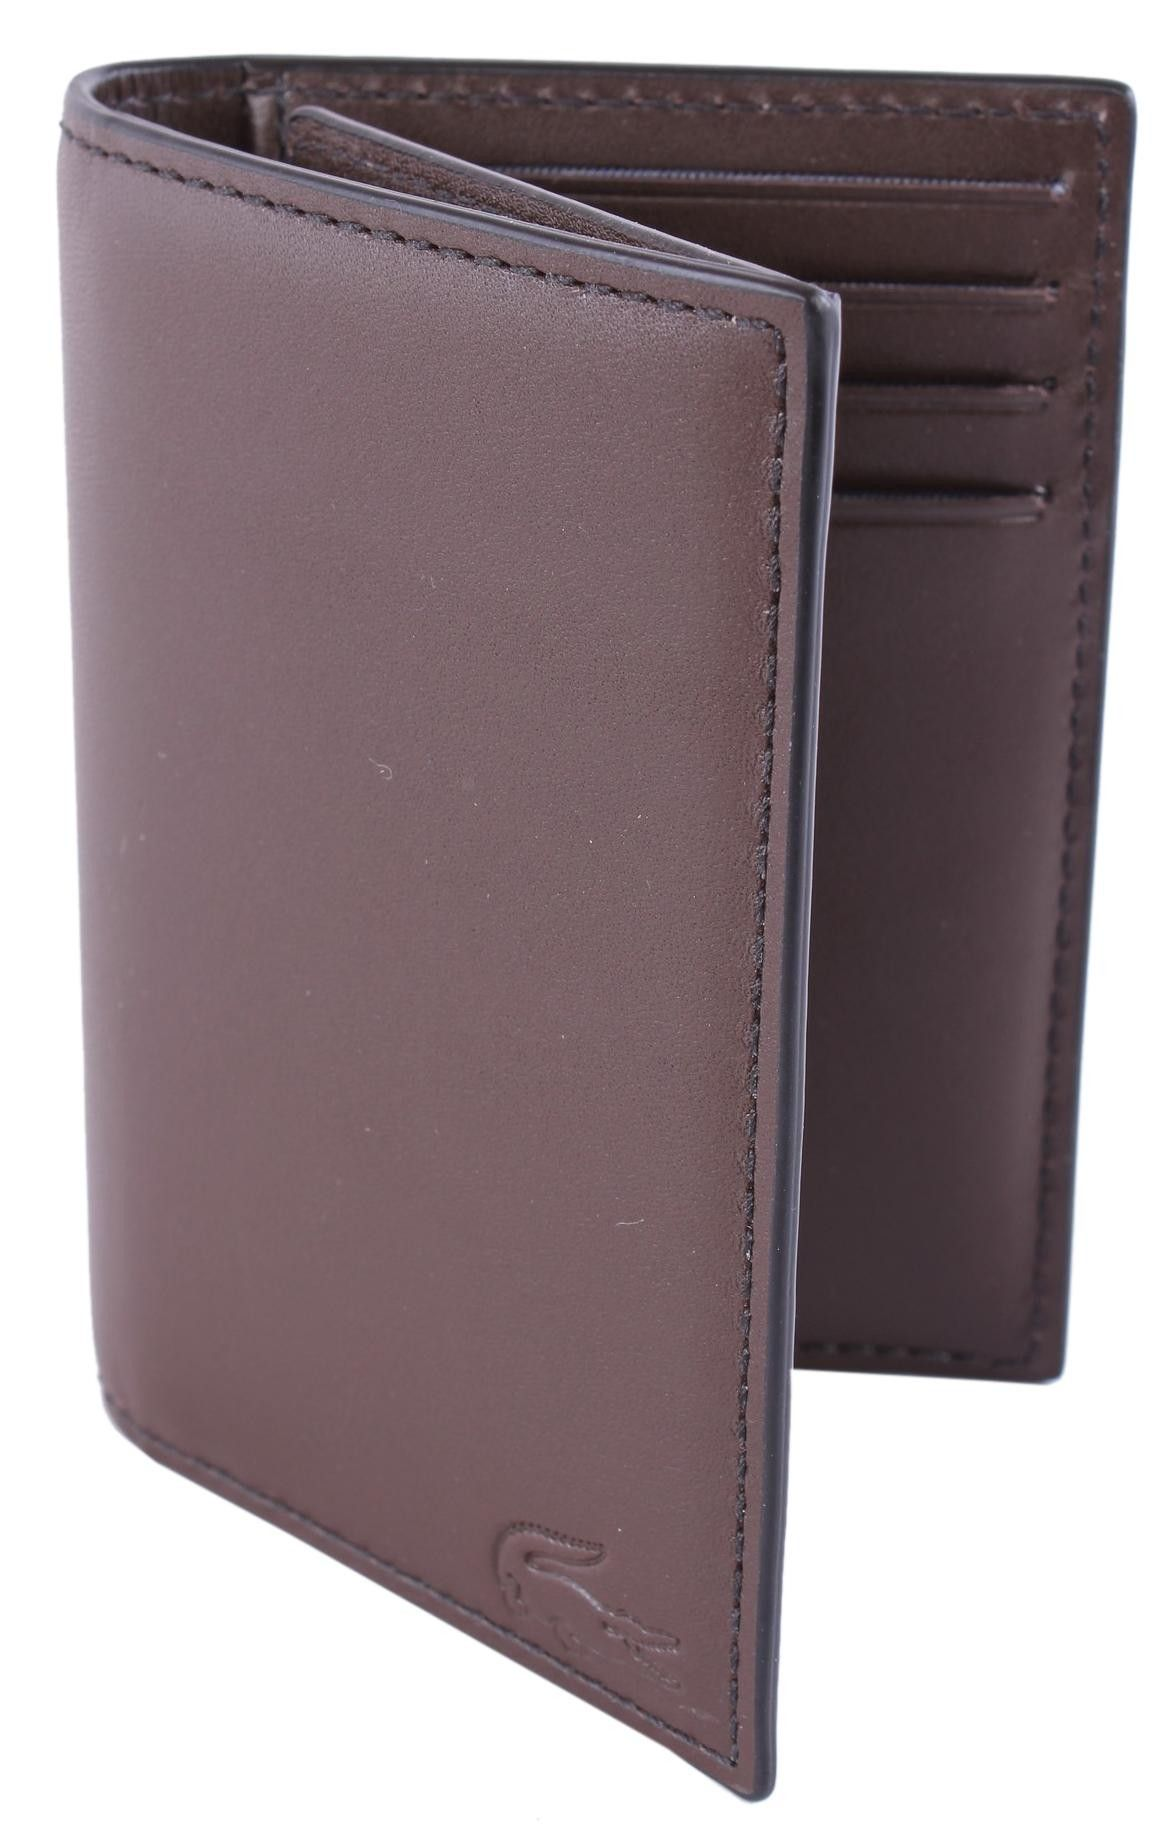 597ac9fca7d Lacoste Wallet - Brown Business Card Holder #Lacoste #Mens #Wallet ...